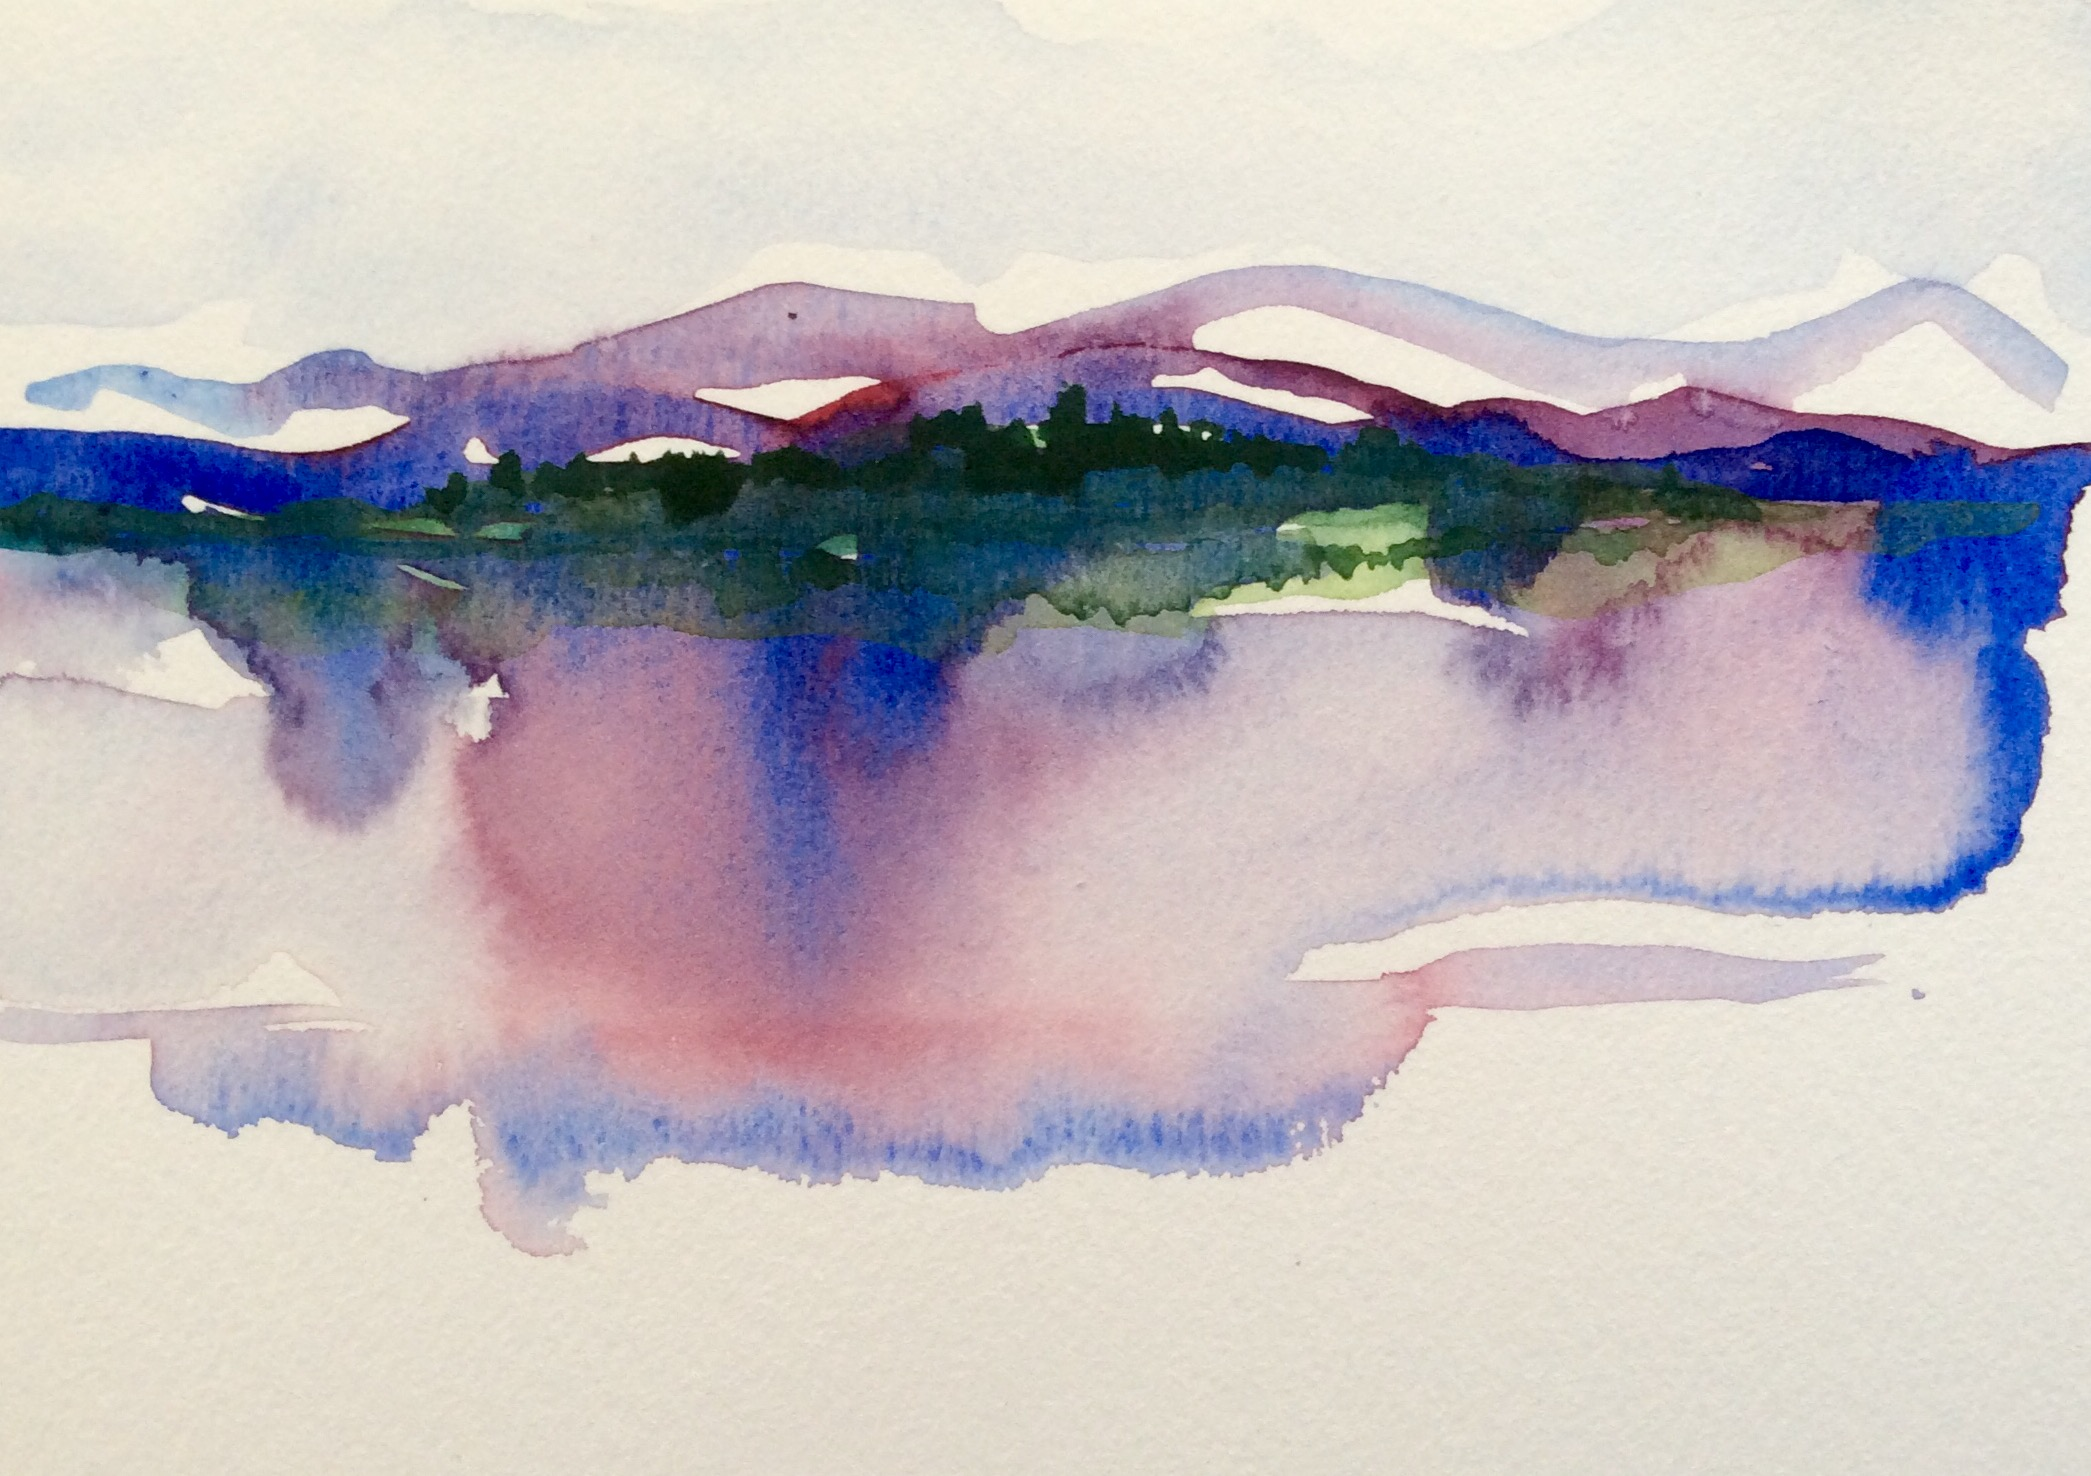 2091x1476 The Magic Of Watercolor Watercolors By Lynn Holbein